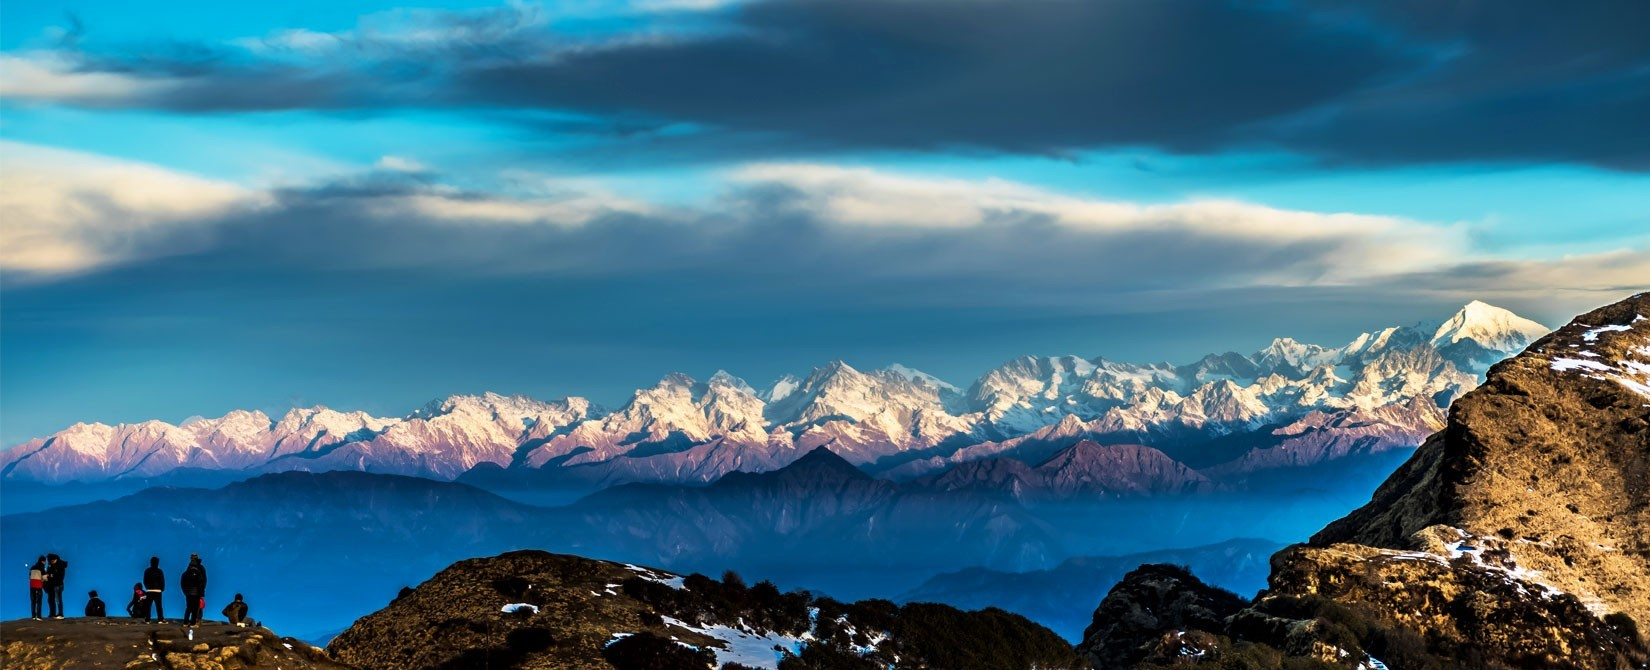 Kalinchowk view's of Mountains